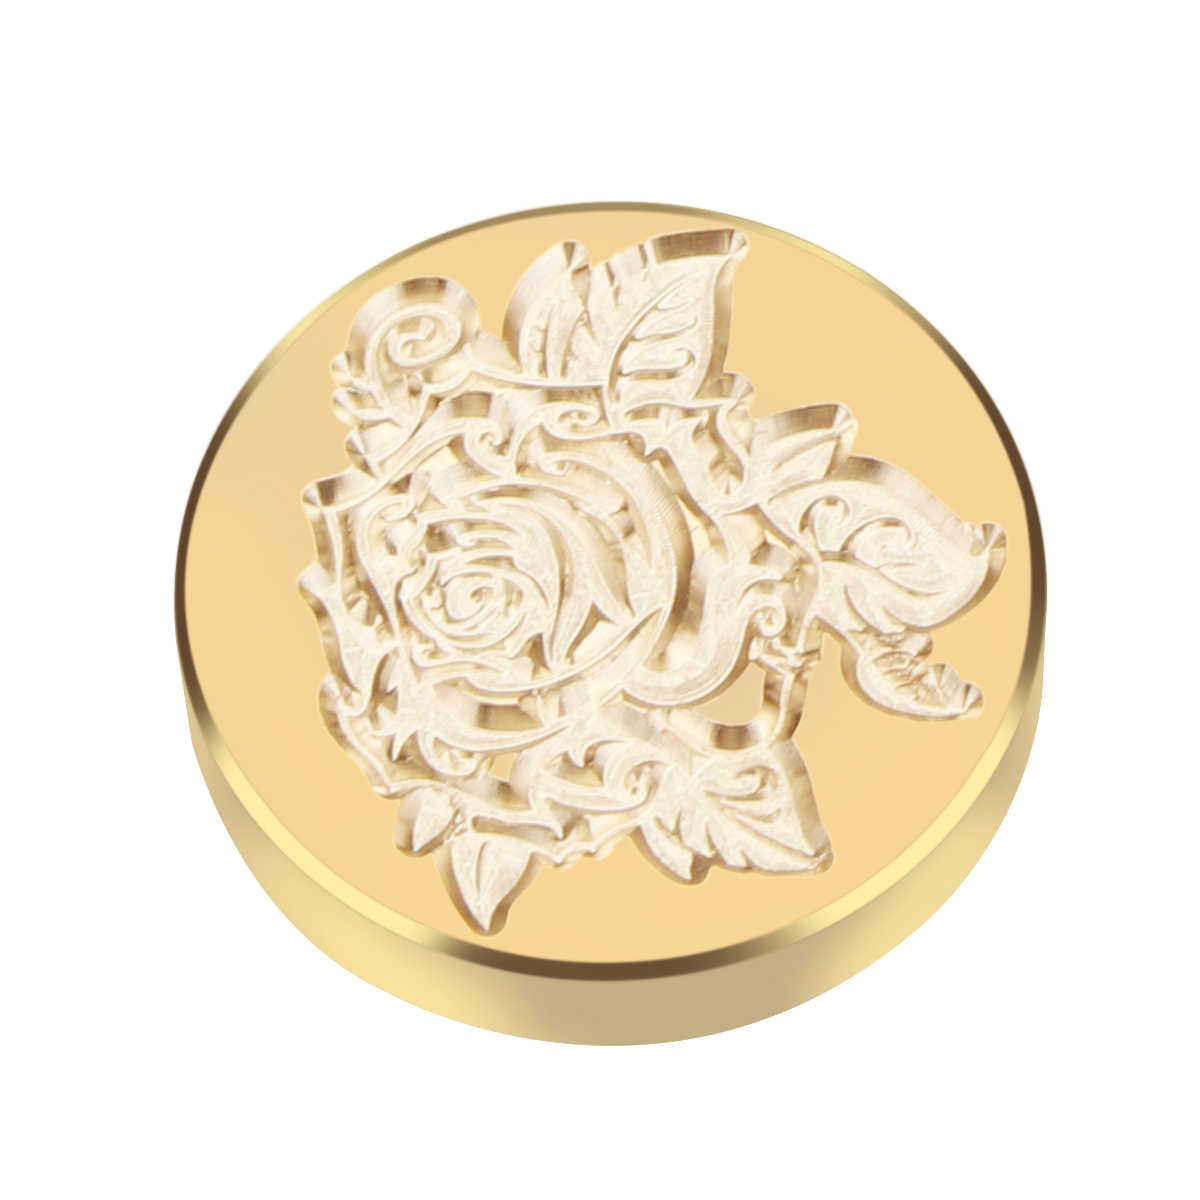 new arrivalRetro Sealing Wax Stamp Copper Head Round Copper Head For Envelope Sealing Clear Stamps Embossing Folder